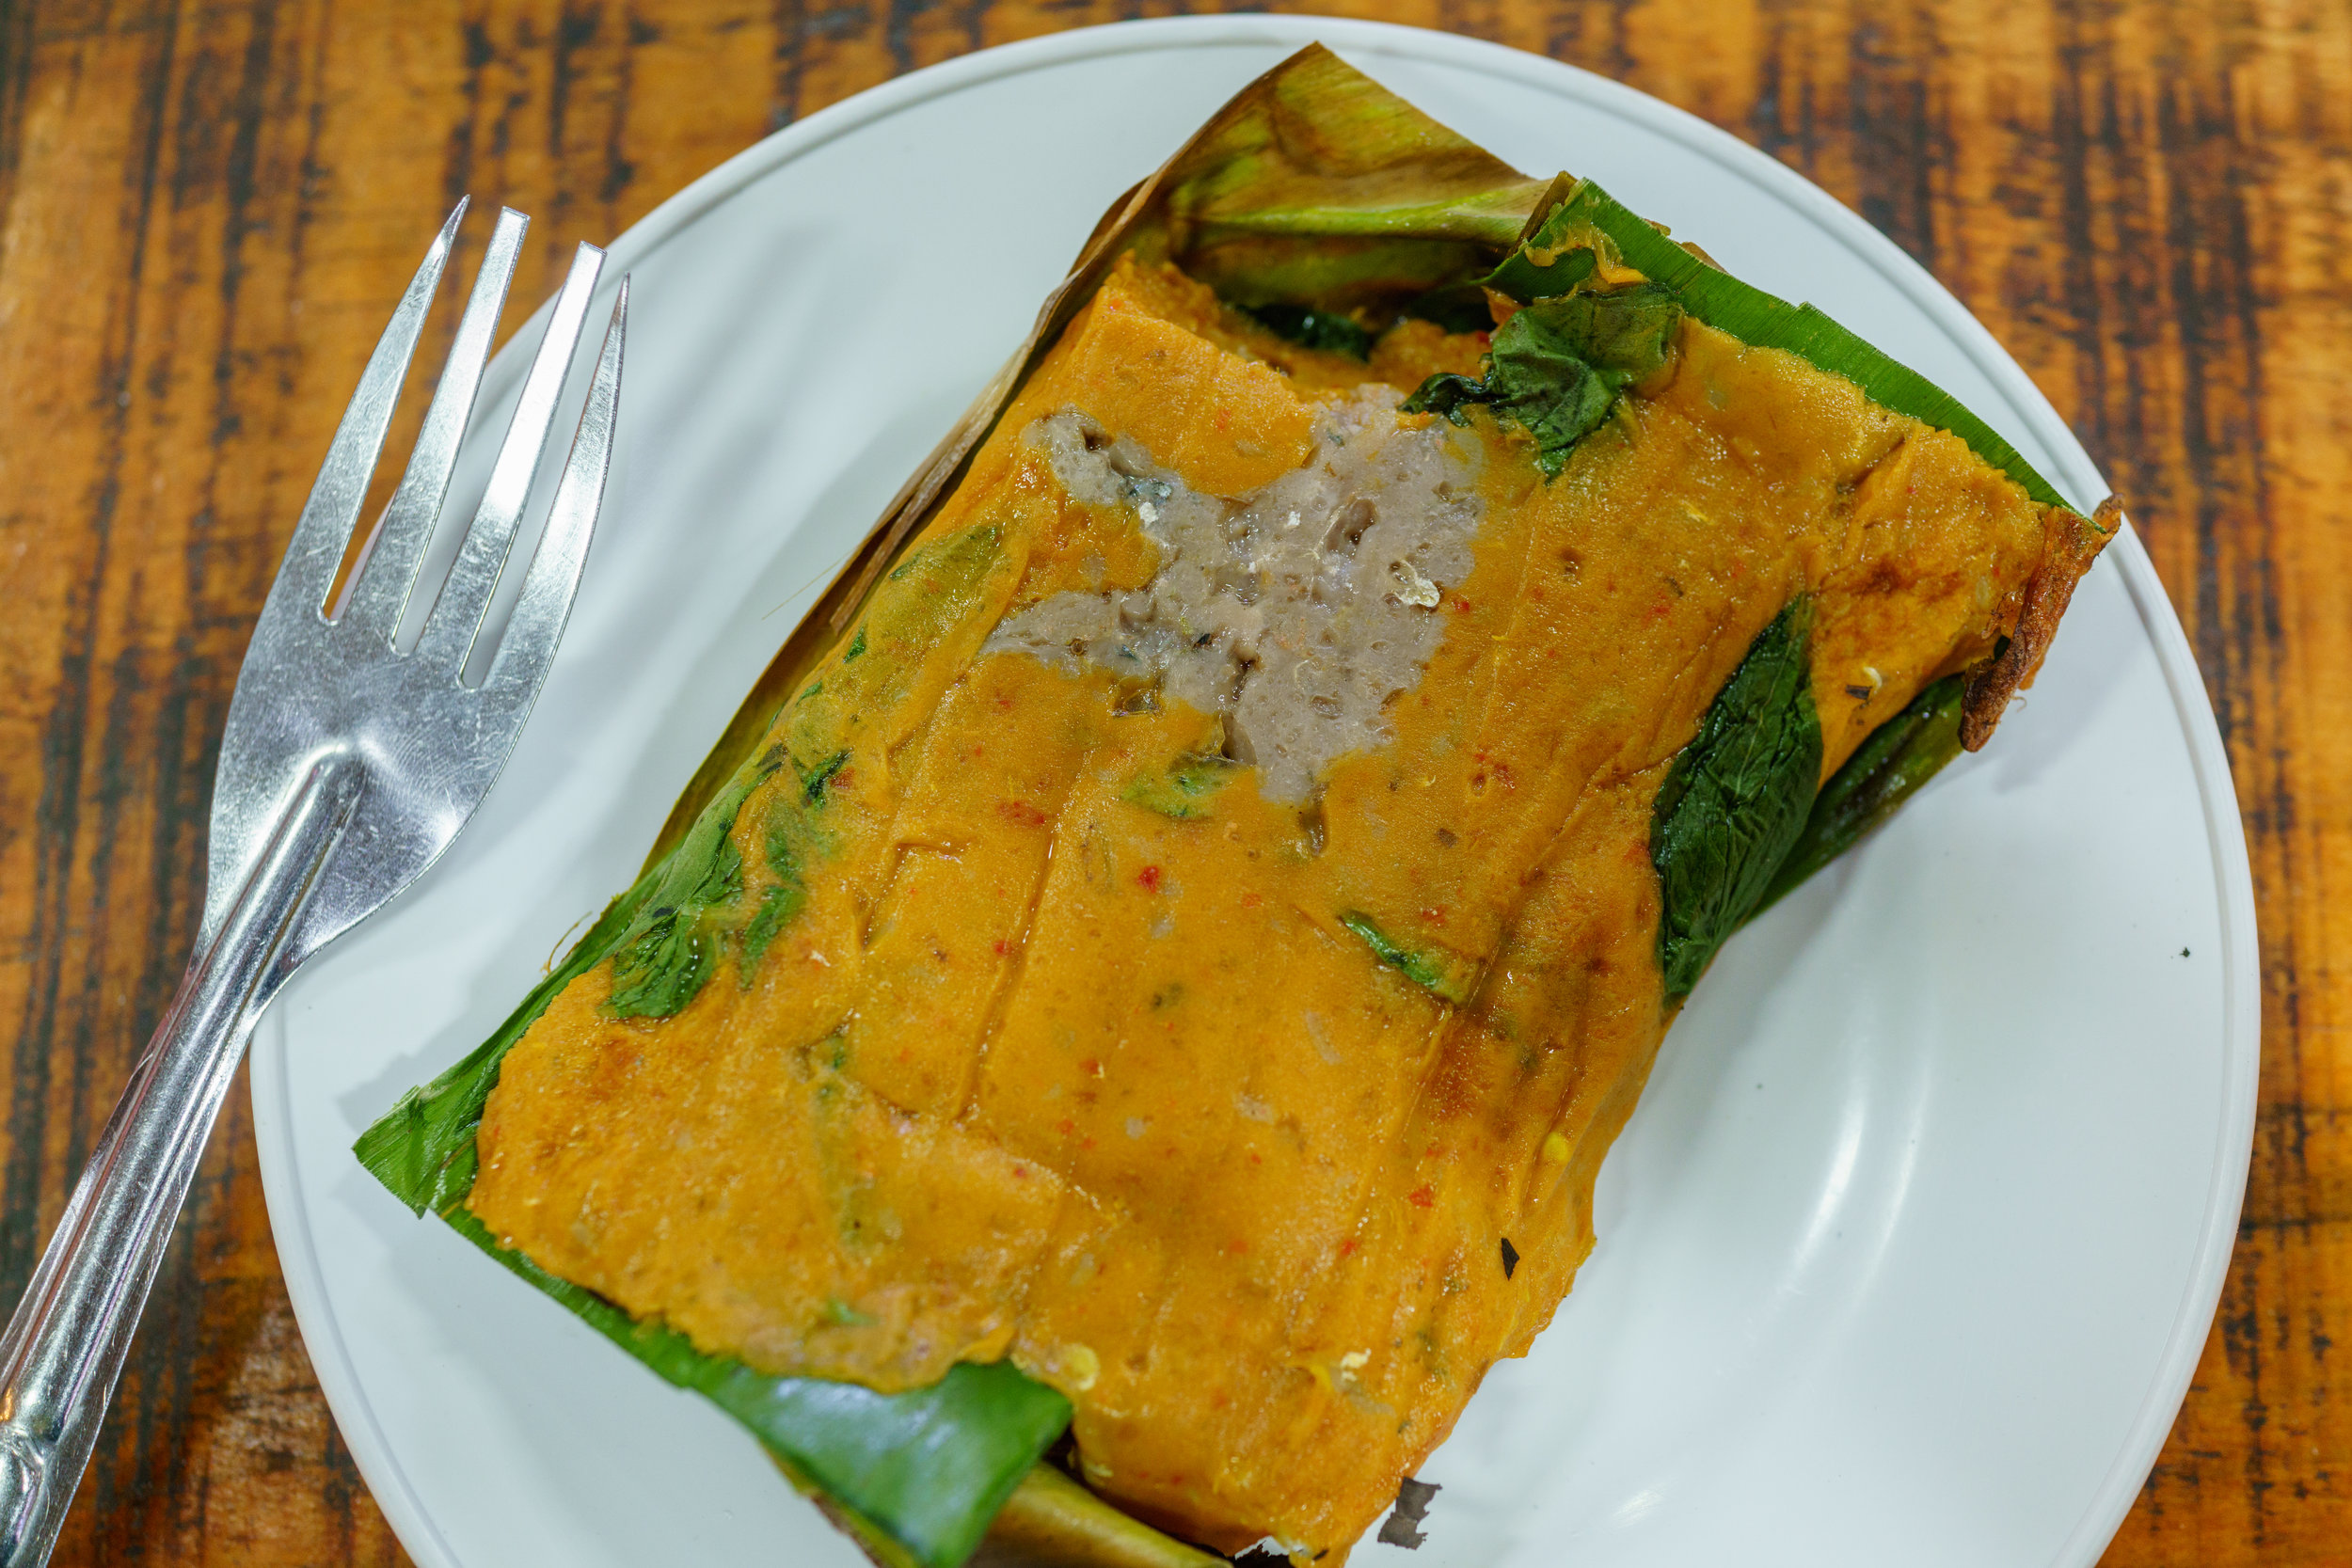 Fish blended with coconut milk and spices and then steamed to make  hor mok